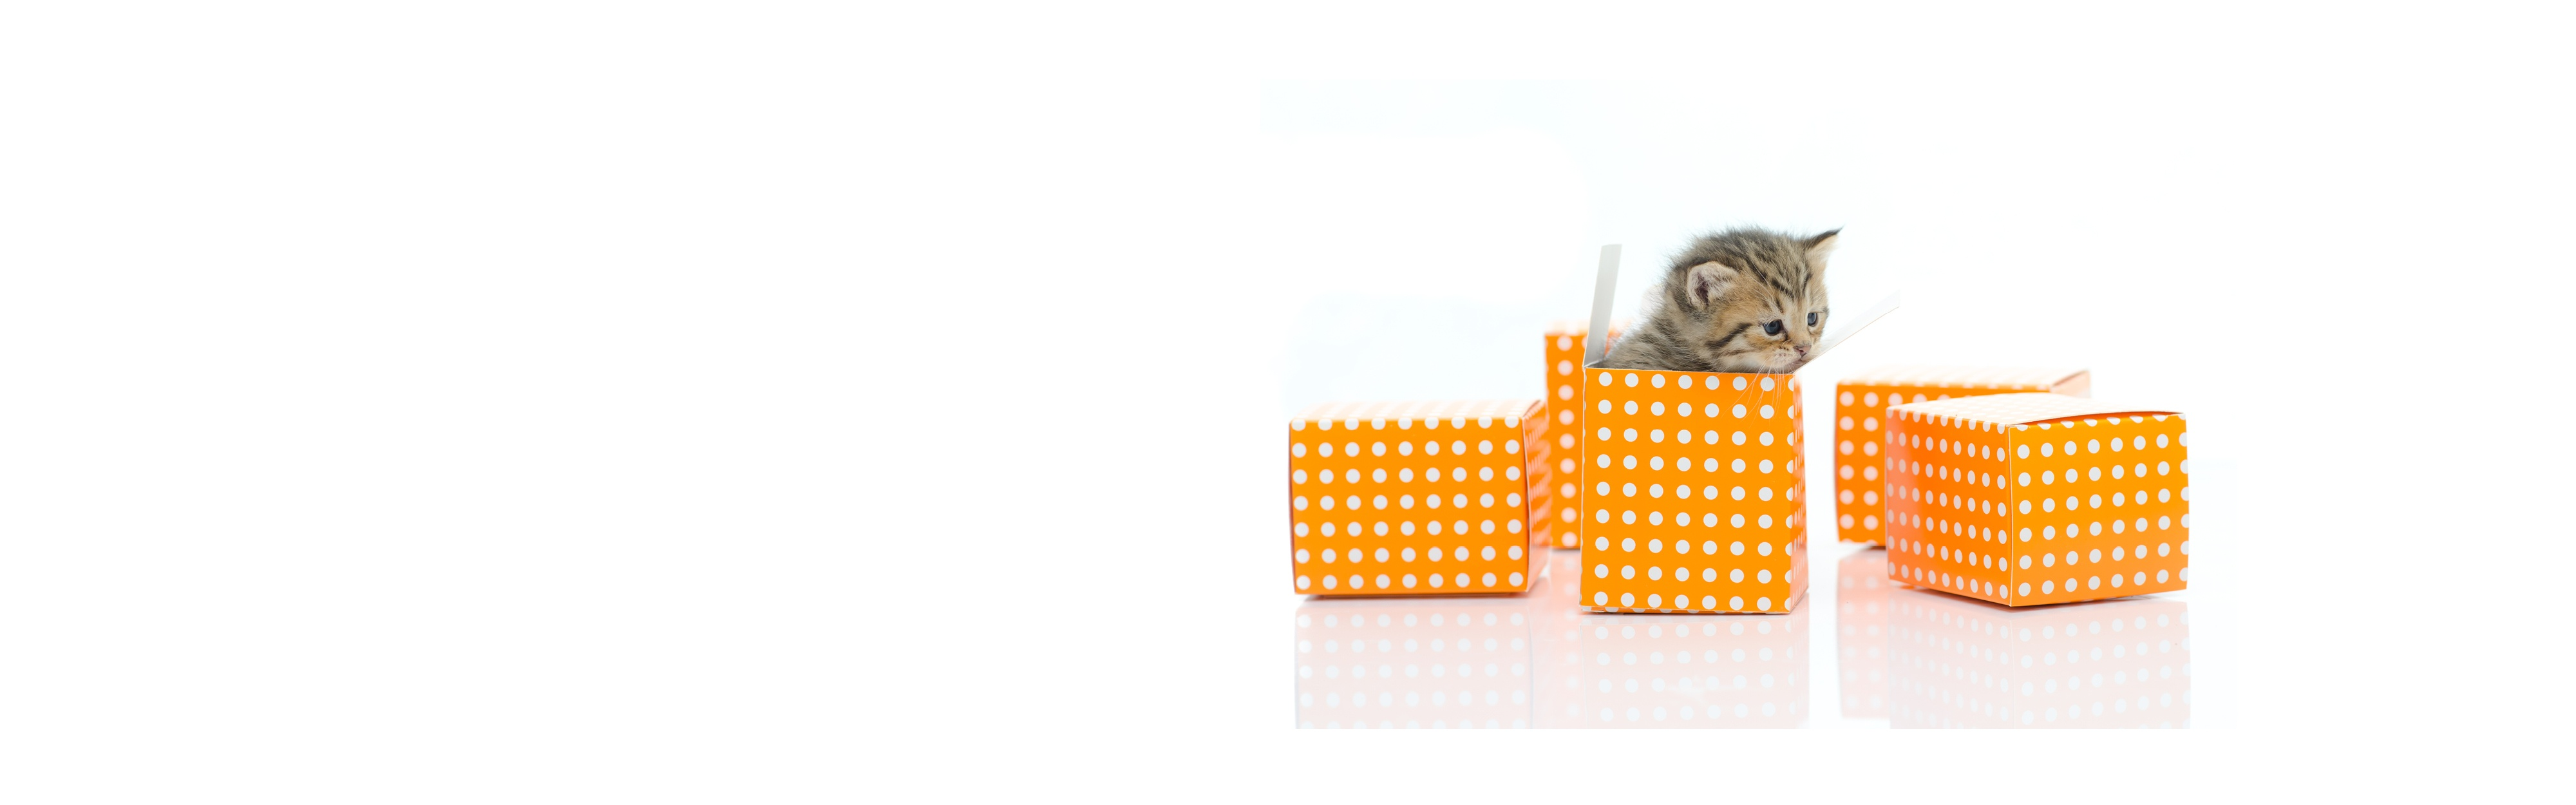 Fulfillment Page Banner 1920 x 600